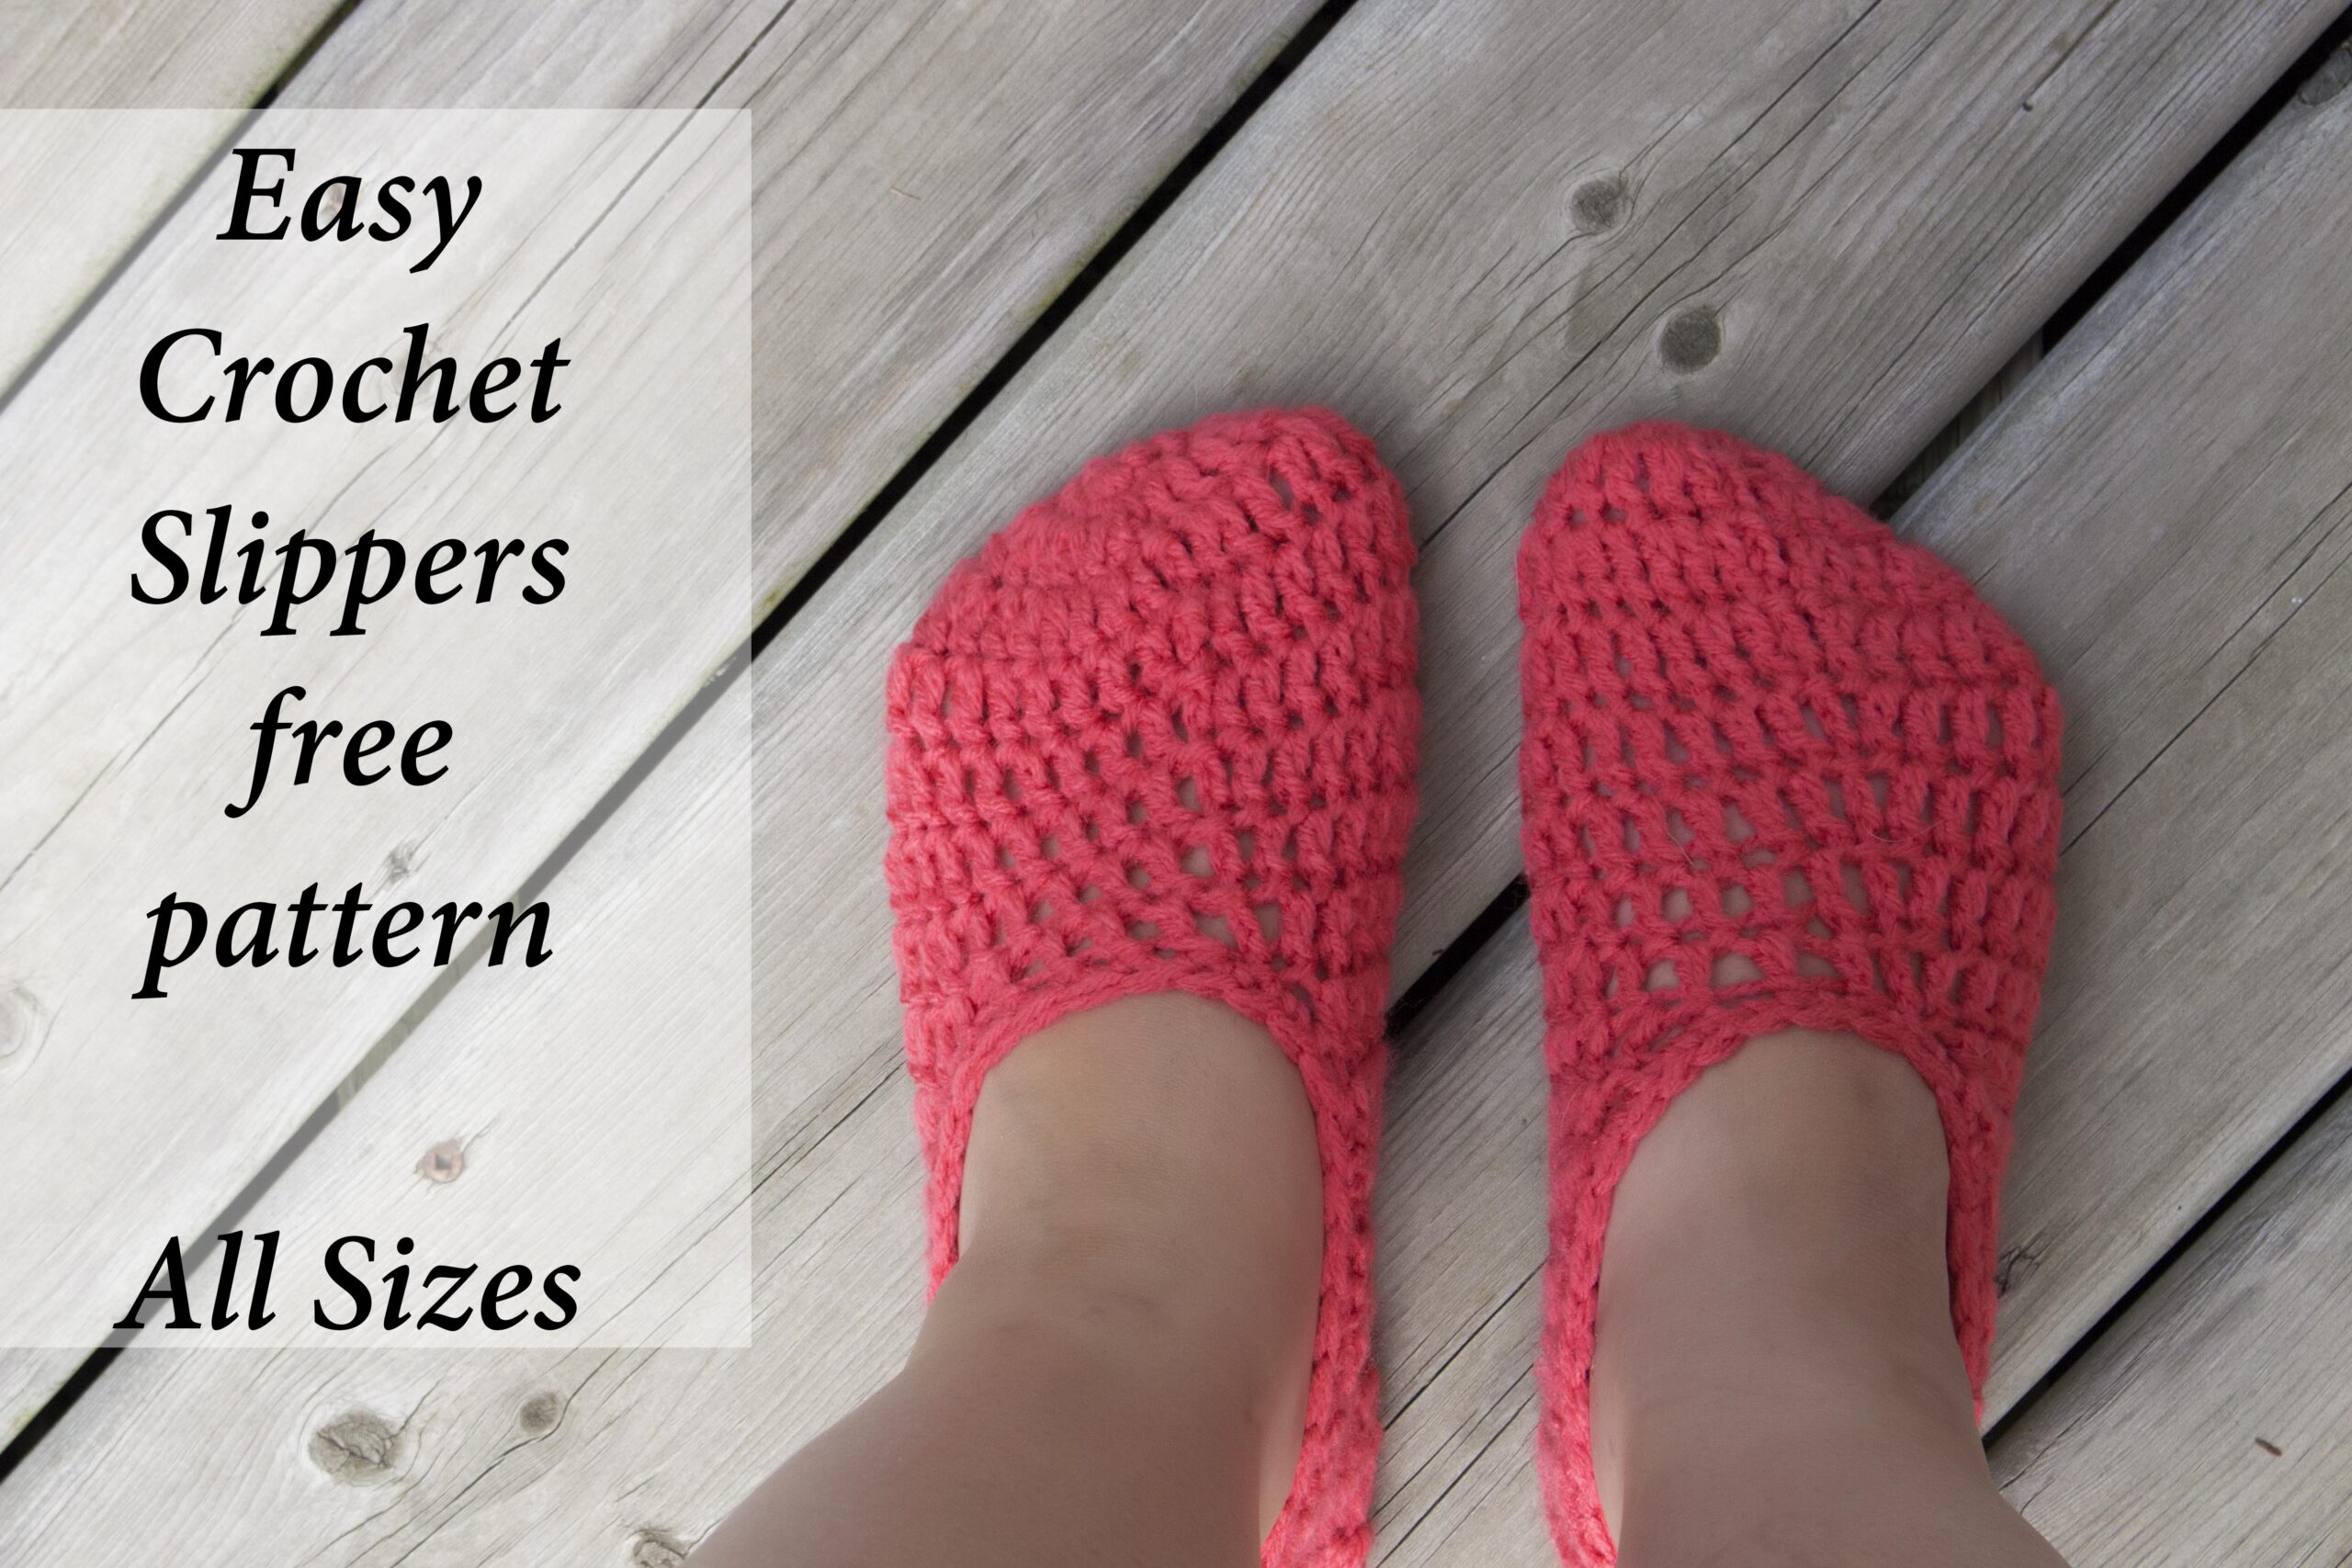 Quick and Easy – All Sizes Easy Crochet slippers